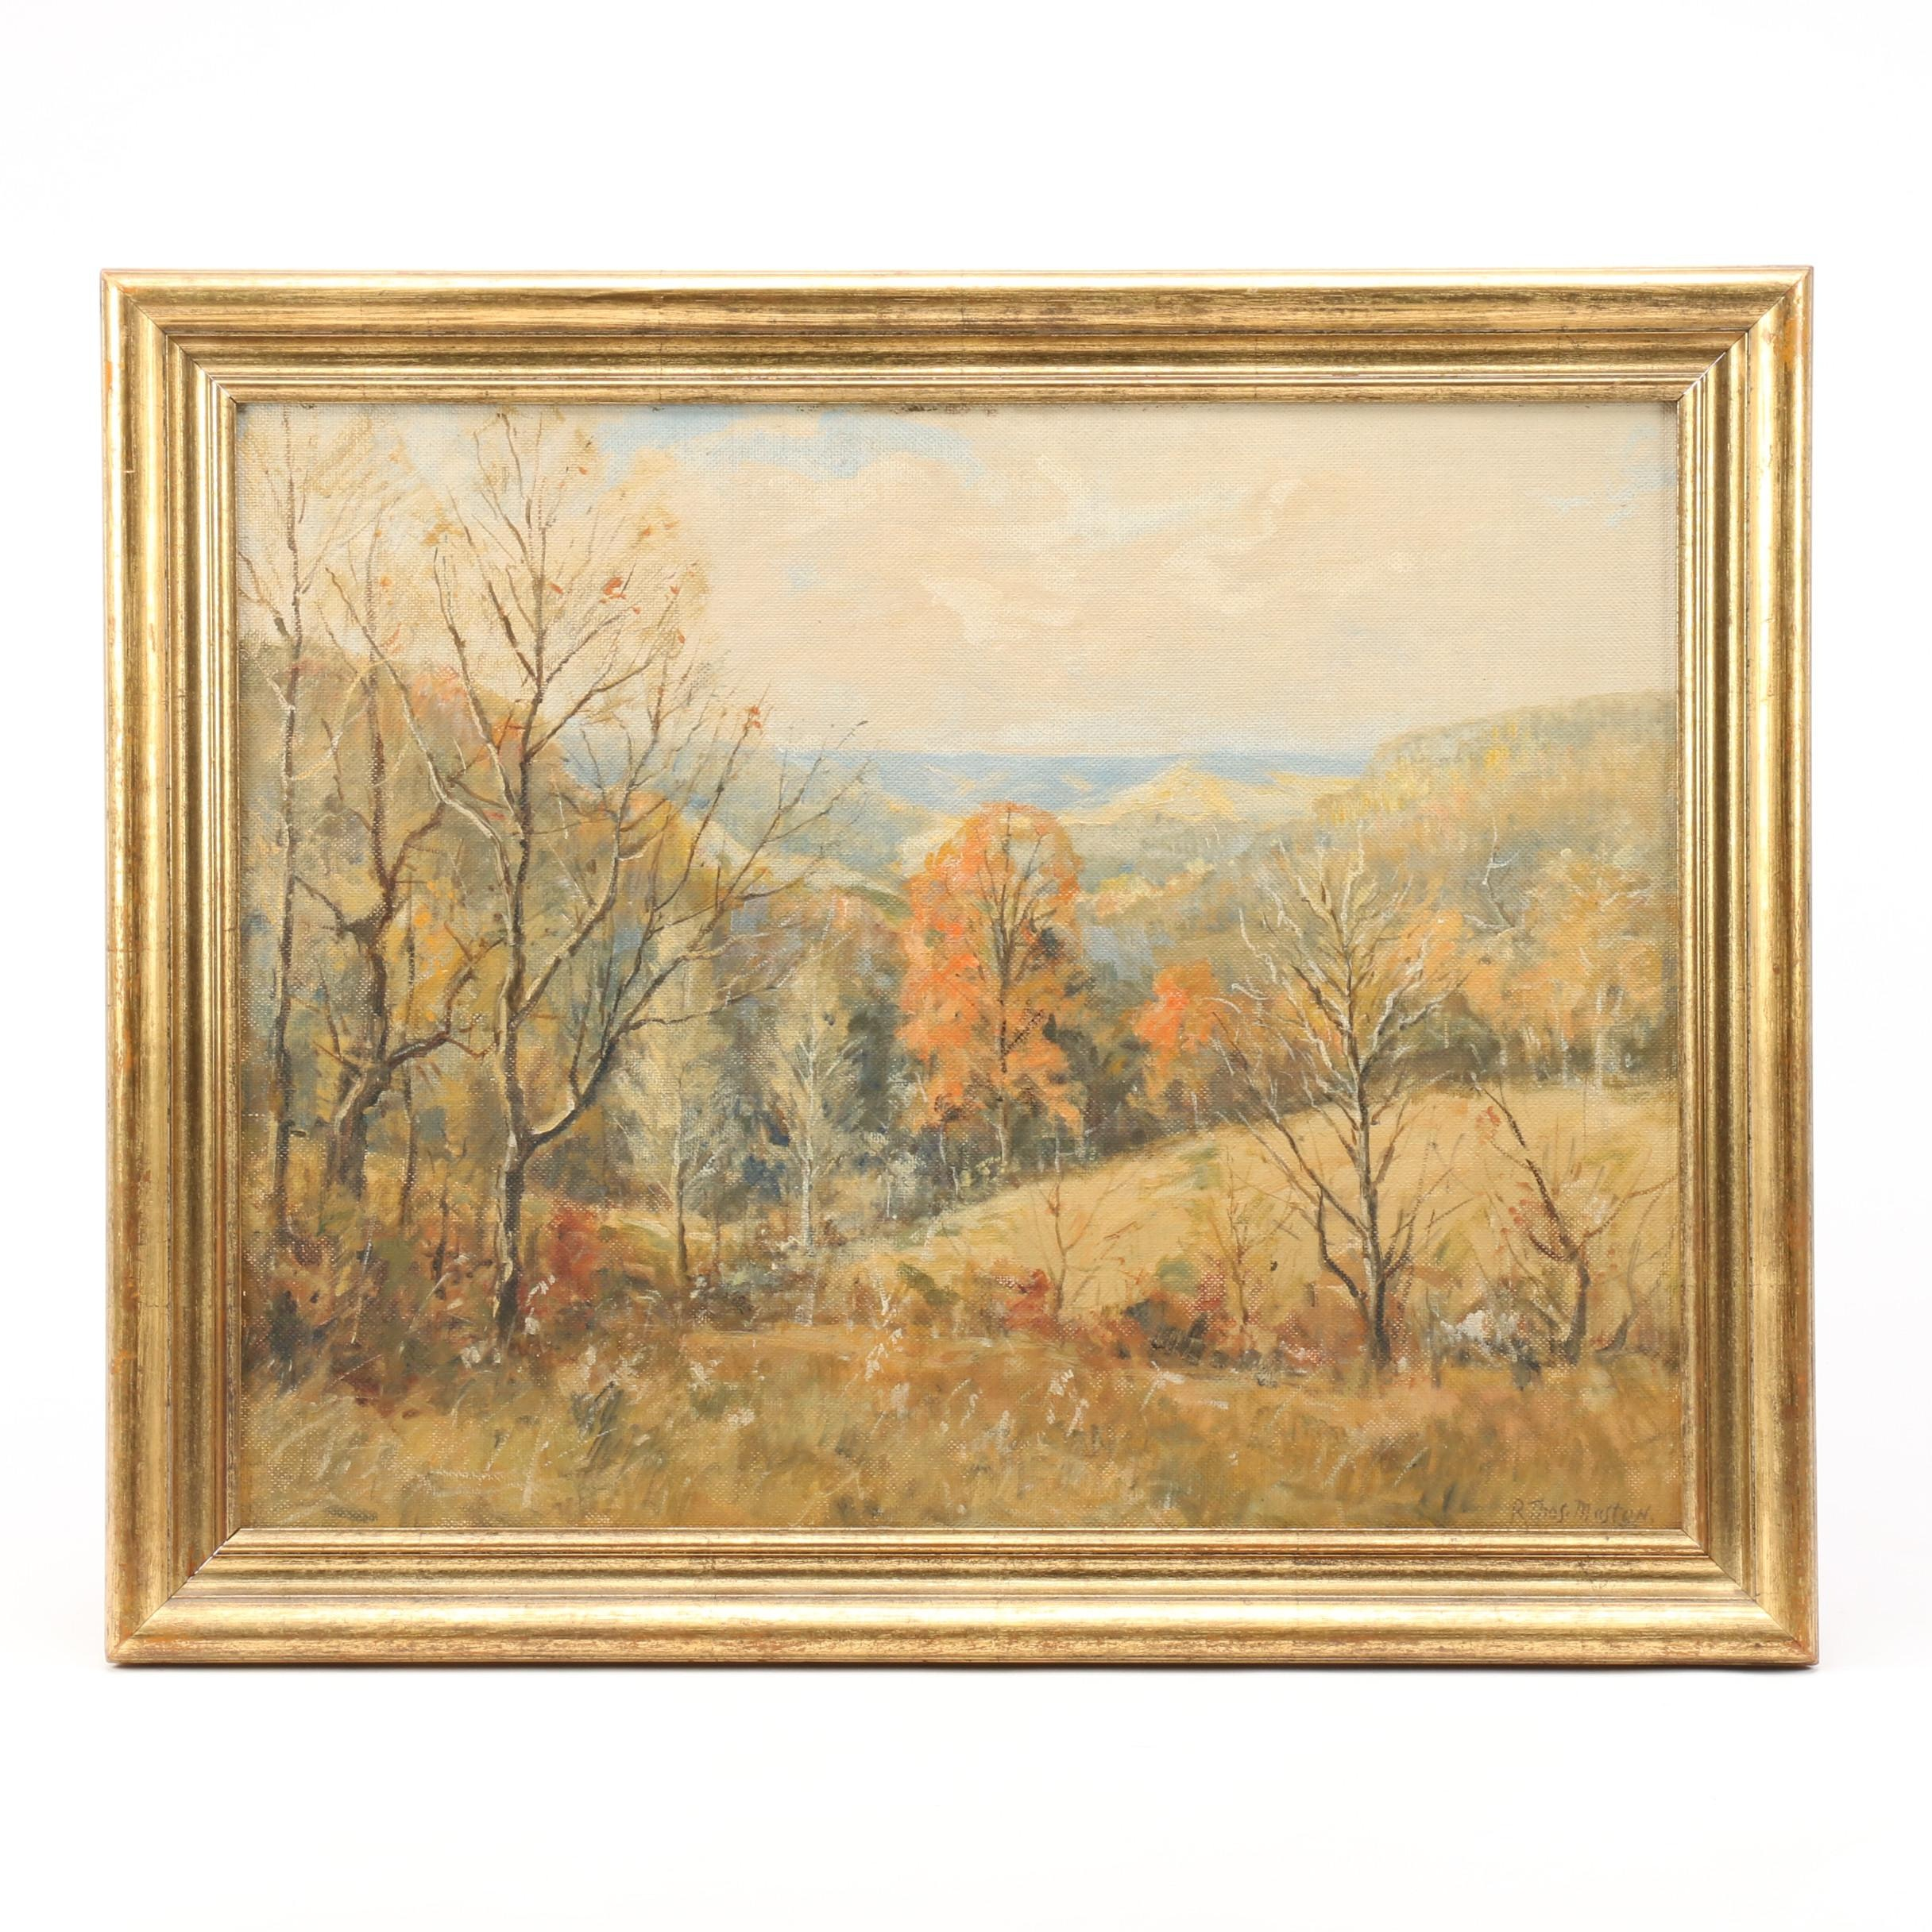 Raymond Thomas Maston Landscape Oil Painting